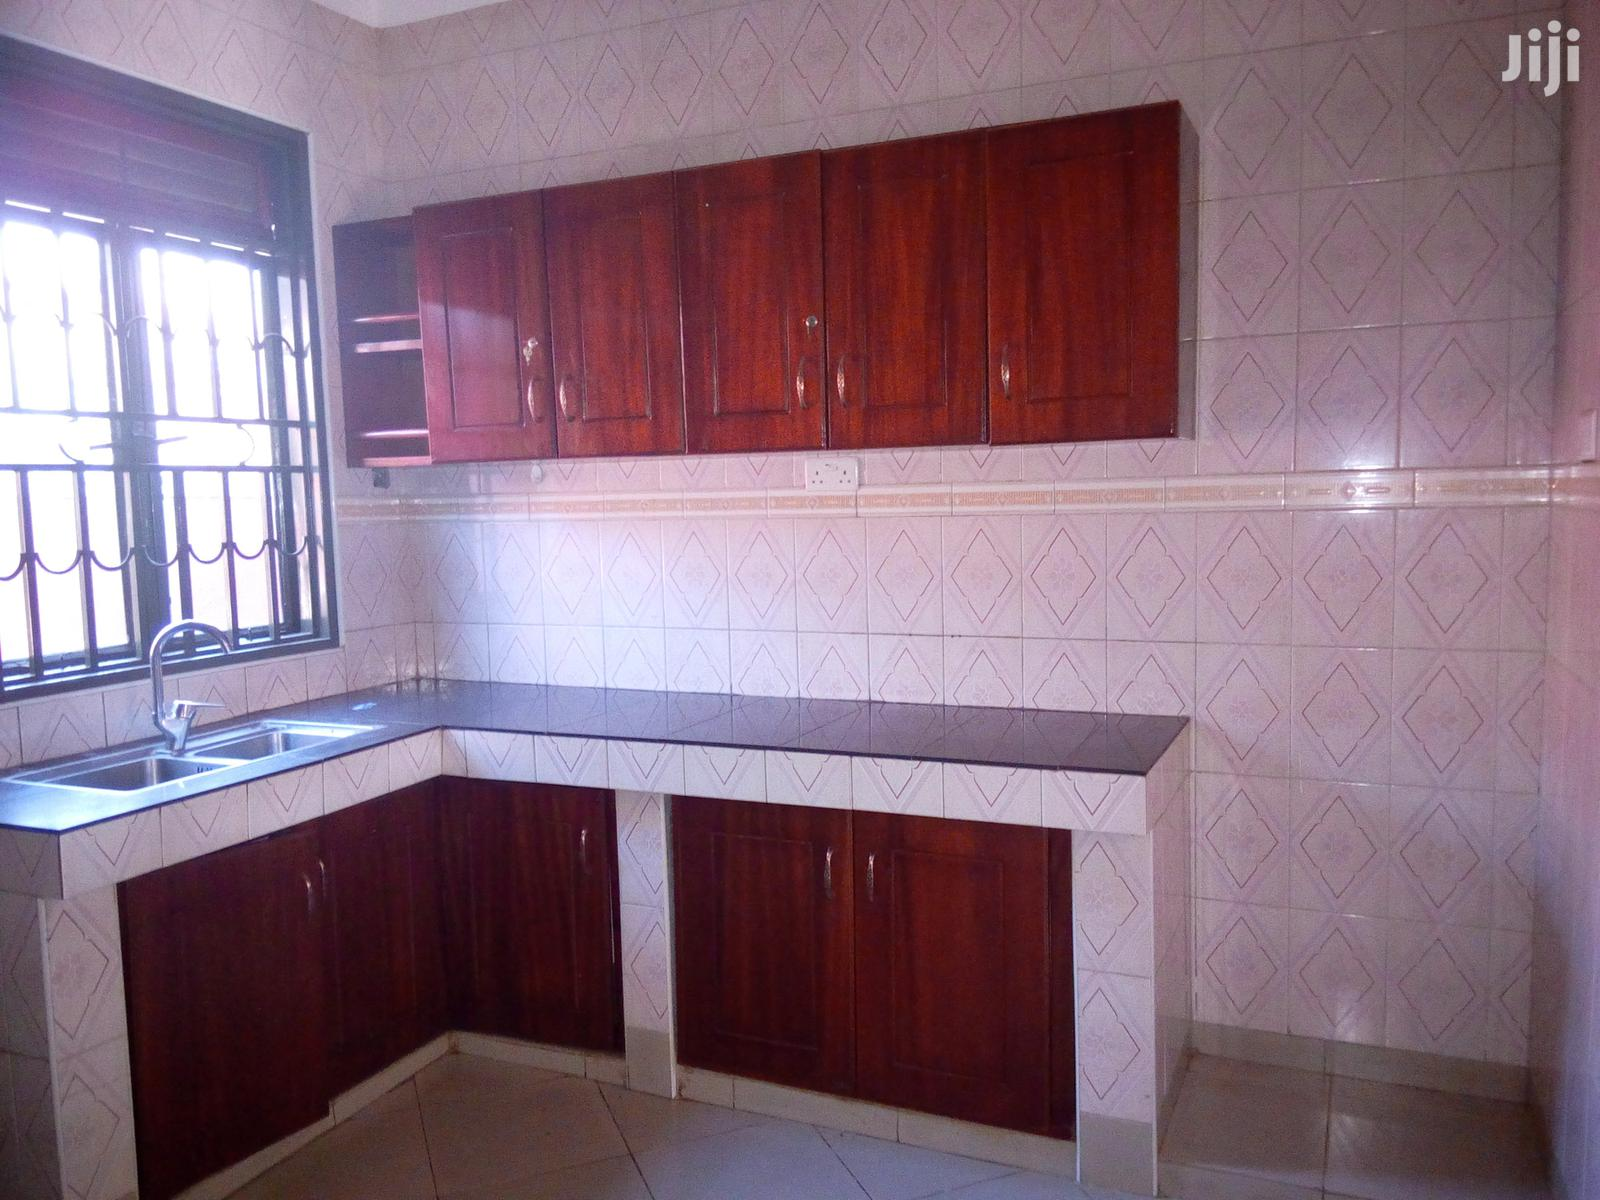 NAMUGONGO Two Bedrooom Two Toilets Standalone House | Houses & Apartments For Rent for sale in Kampala, Central Region, Uganda